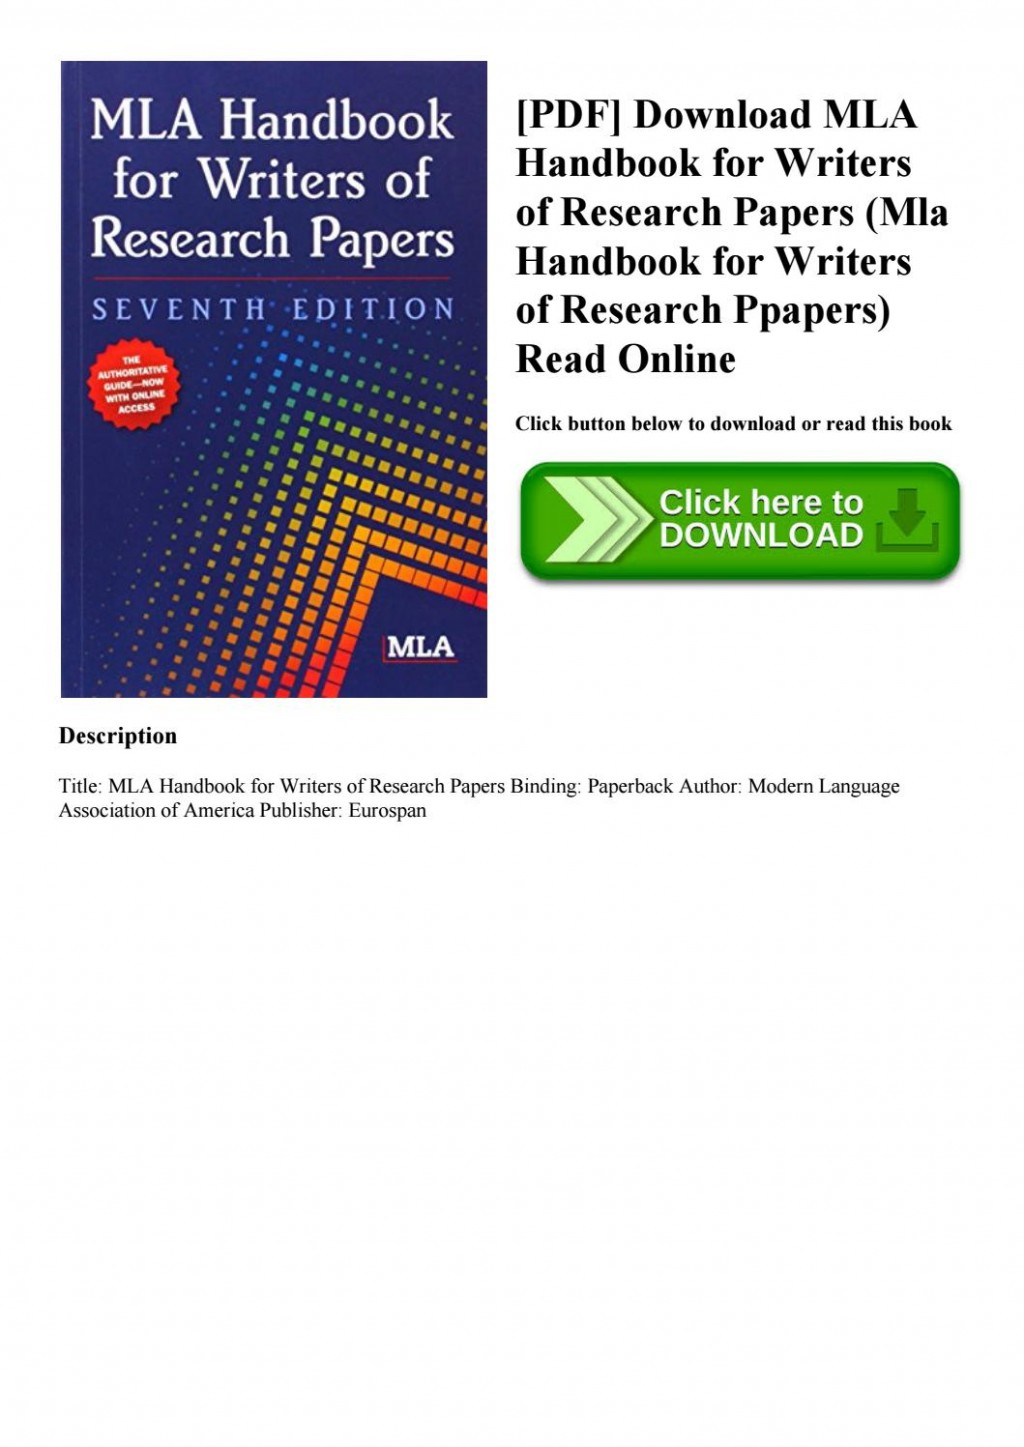 003 Page 1 Research Paper Mla Handbook For Writing Frightening Papers Writers Of 8th Edition Pdf Free Download According To The Large